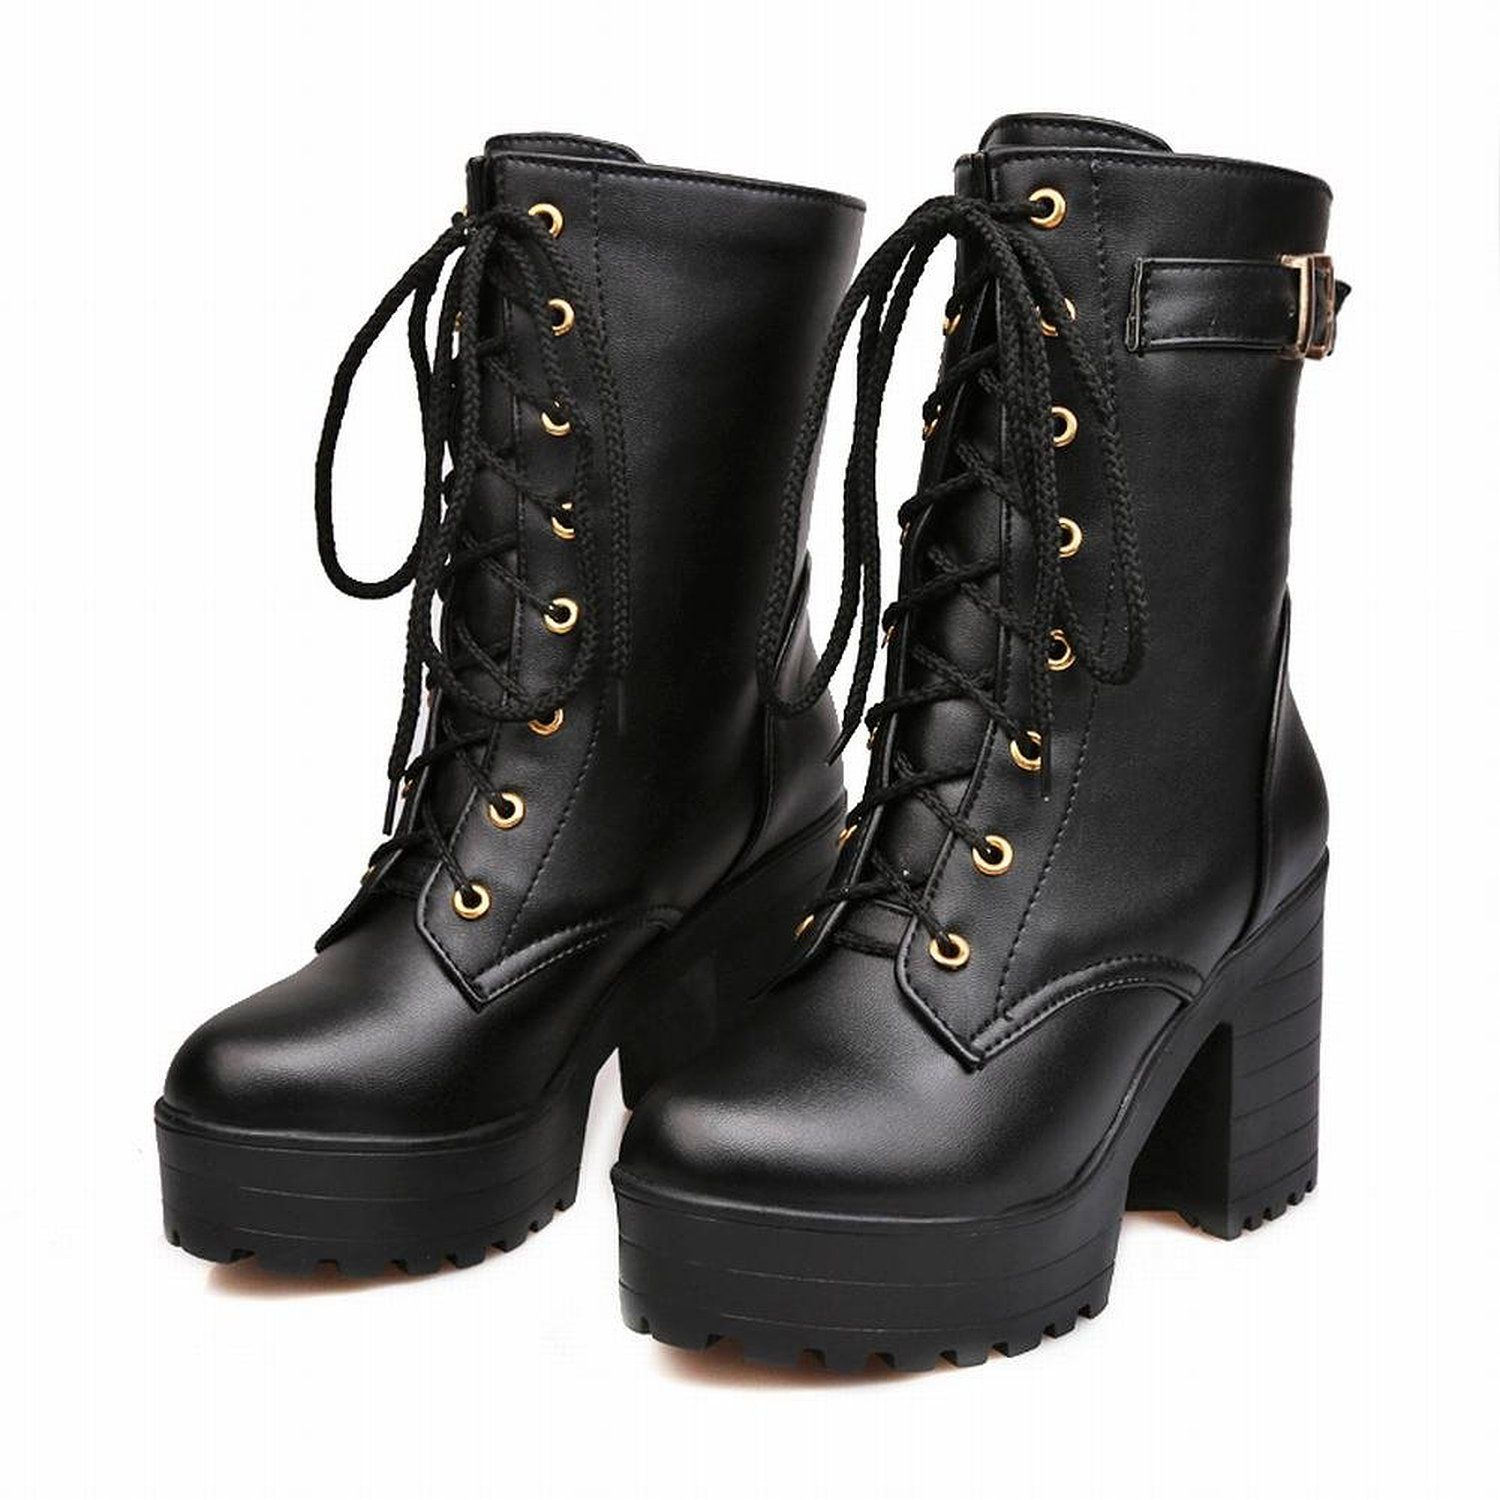 Carol Shoes Fashion Women's Lace-up Buckle Combat Platform Chunky ...